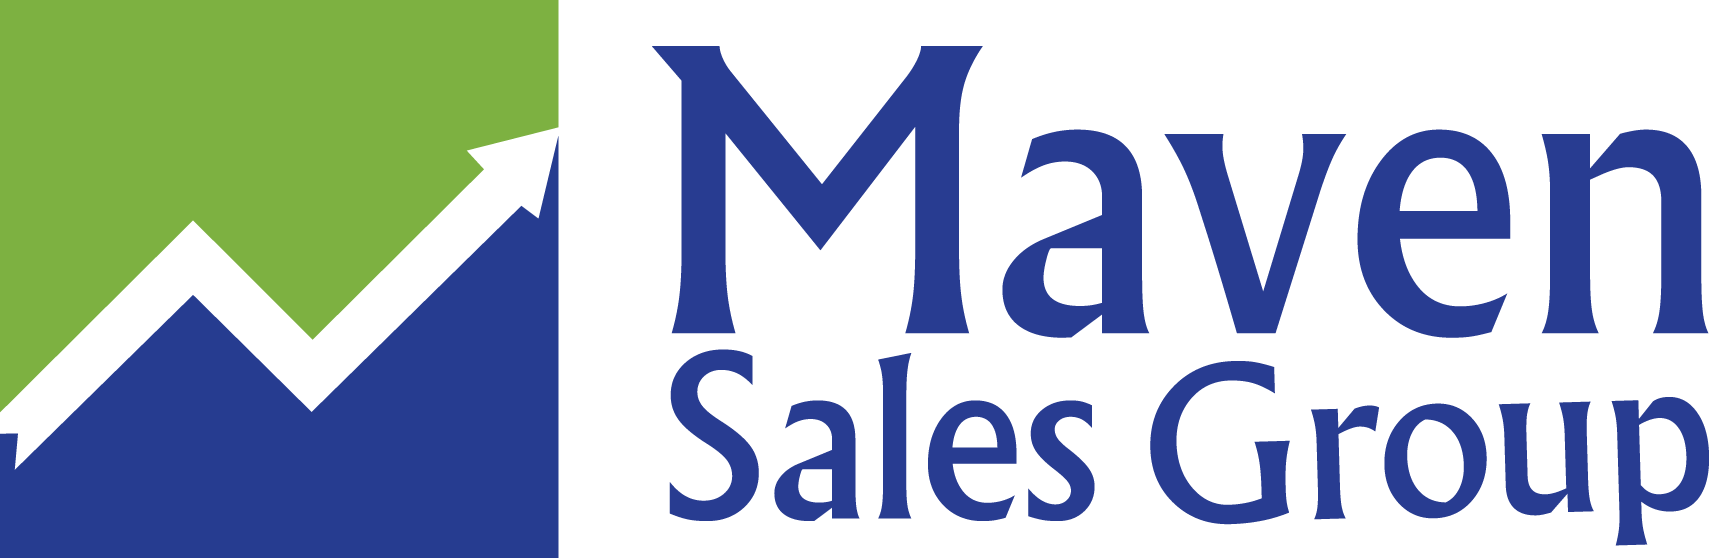 Maven Sales Group Logo